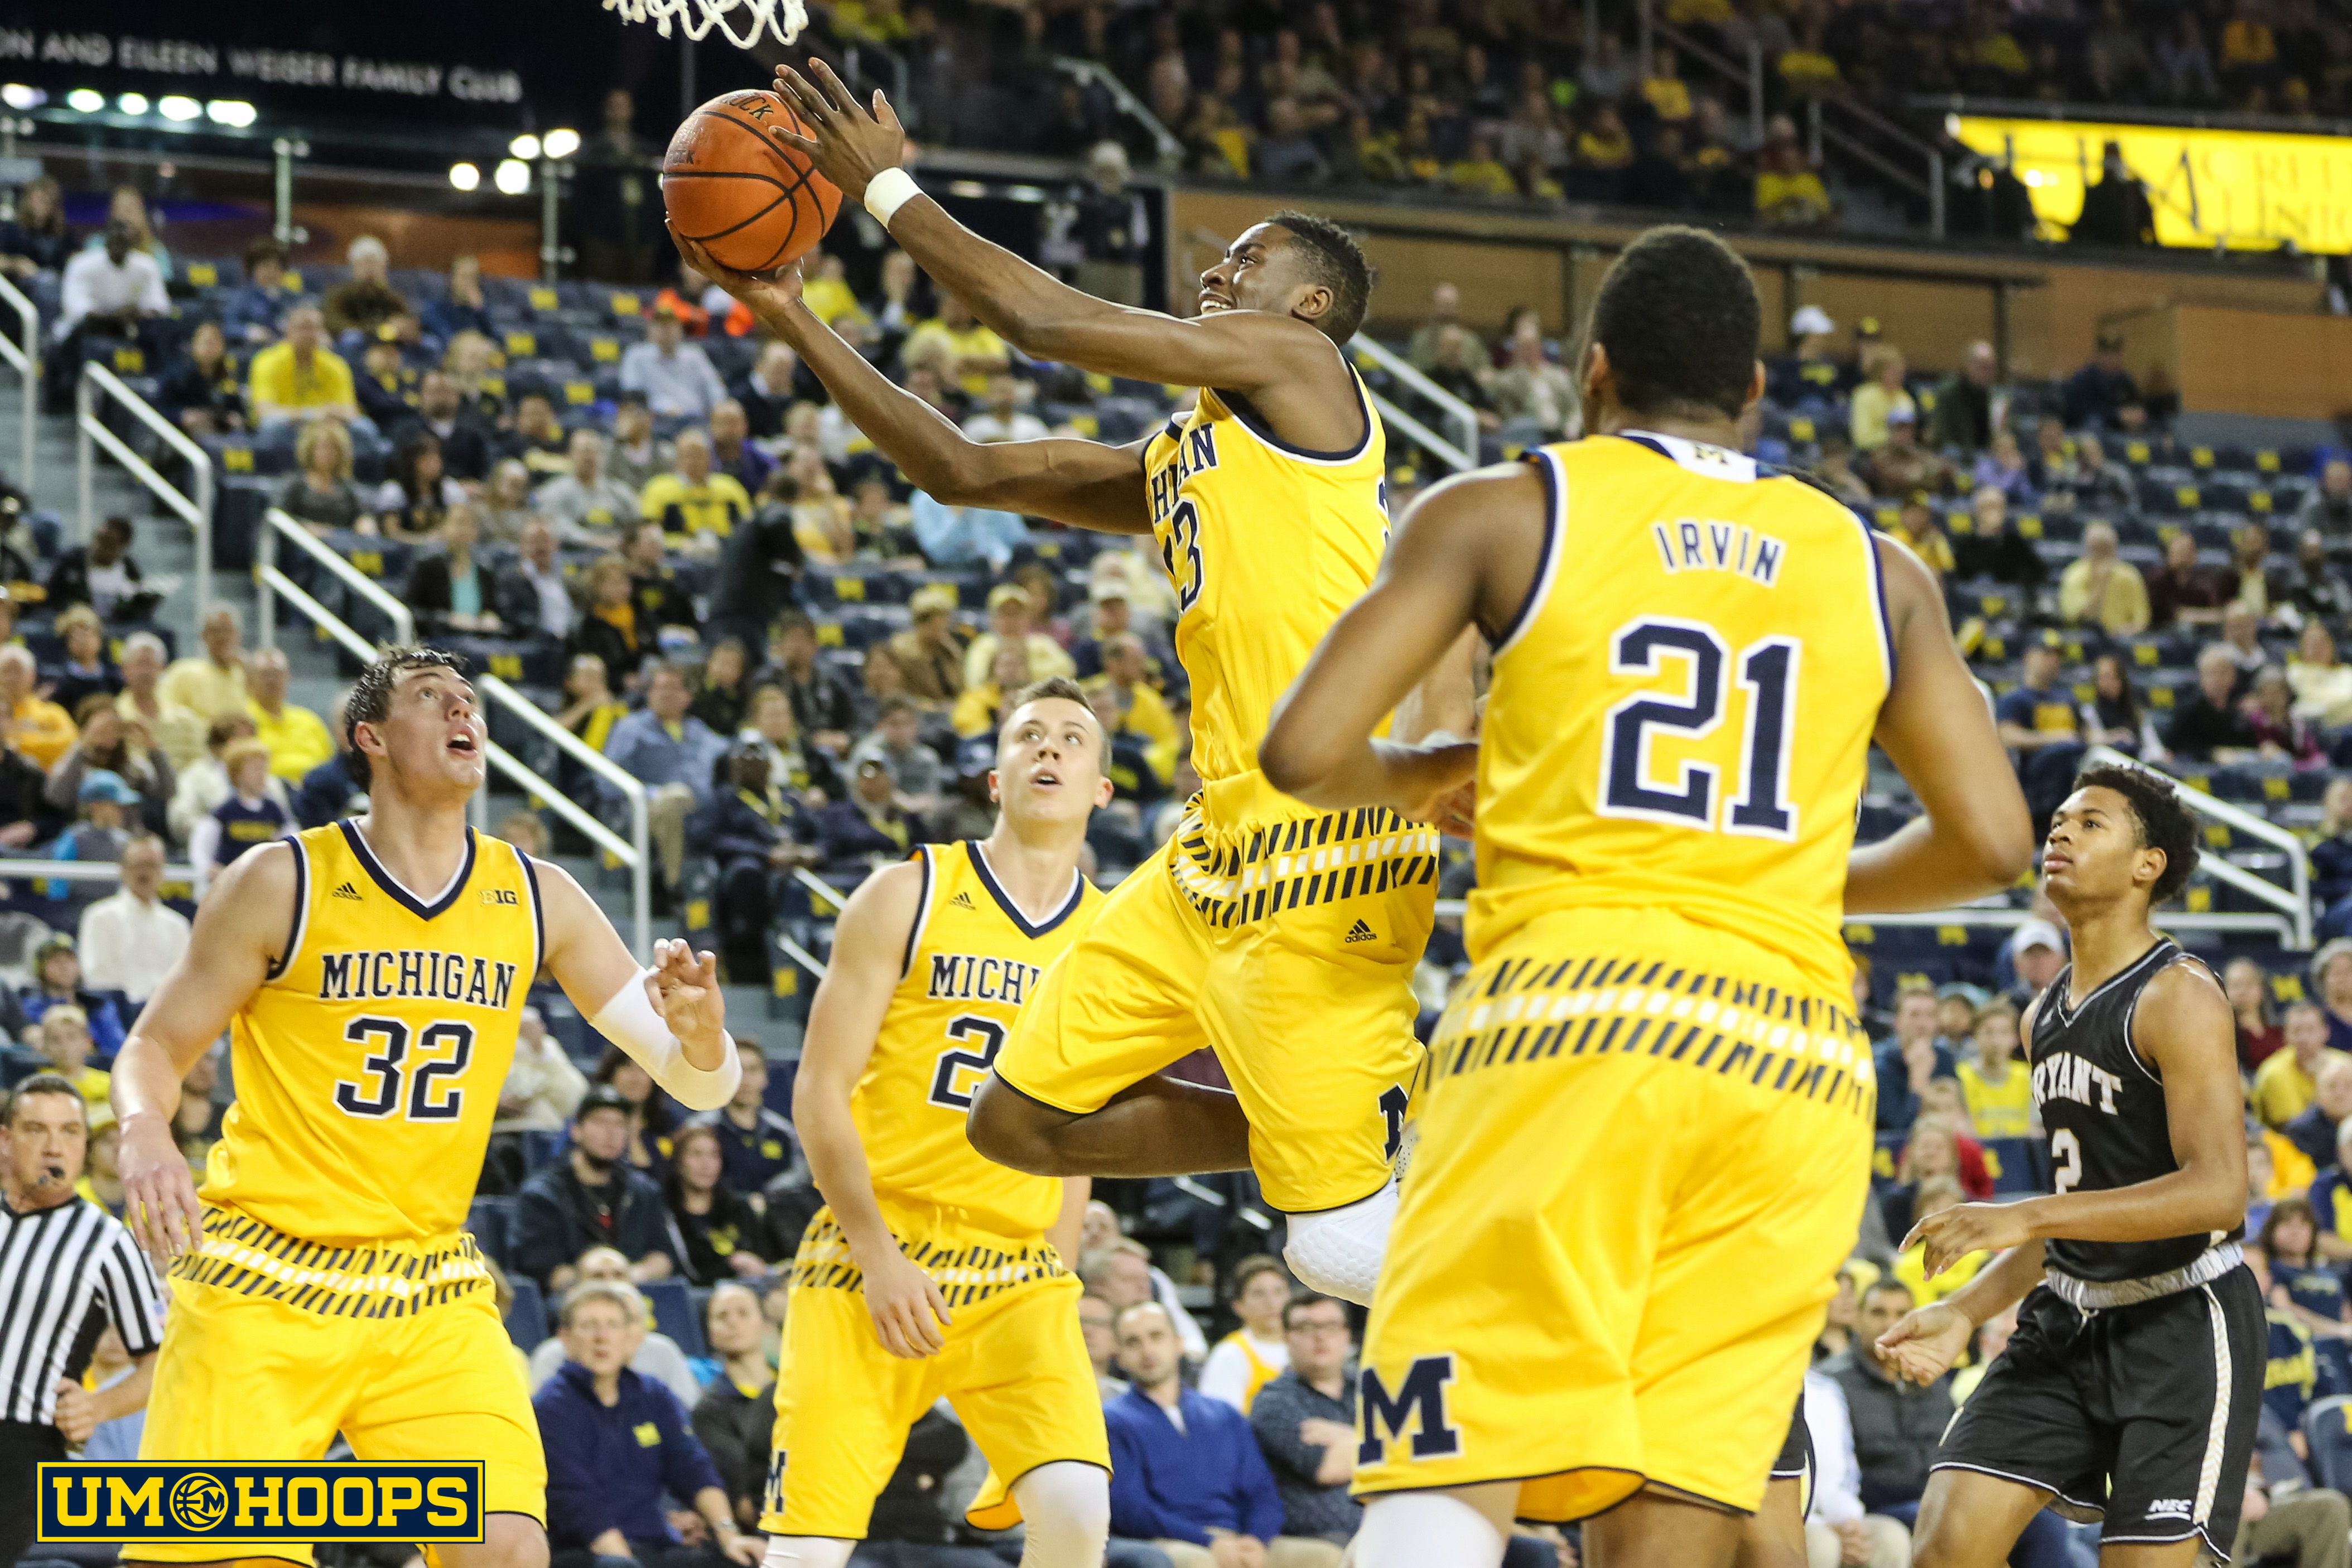 Michigan 96, Bryant 60-2